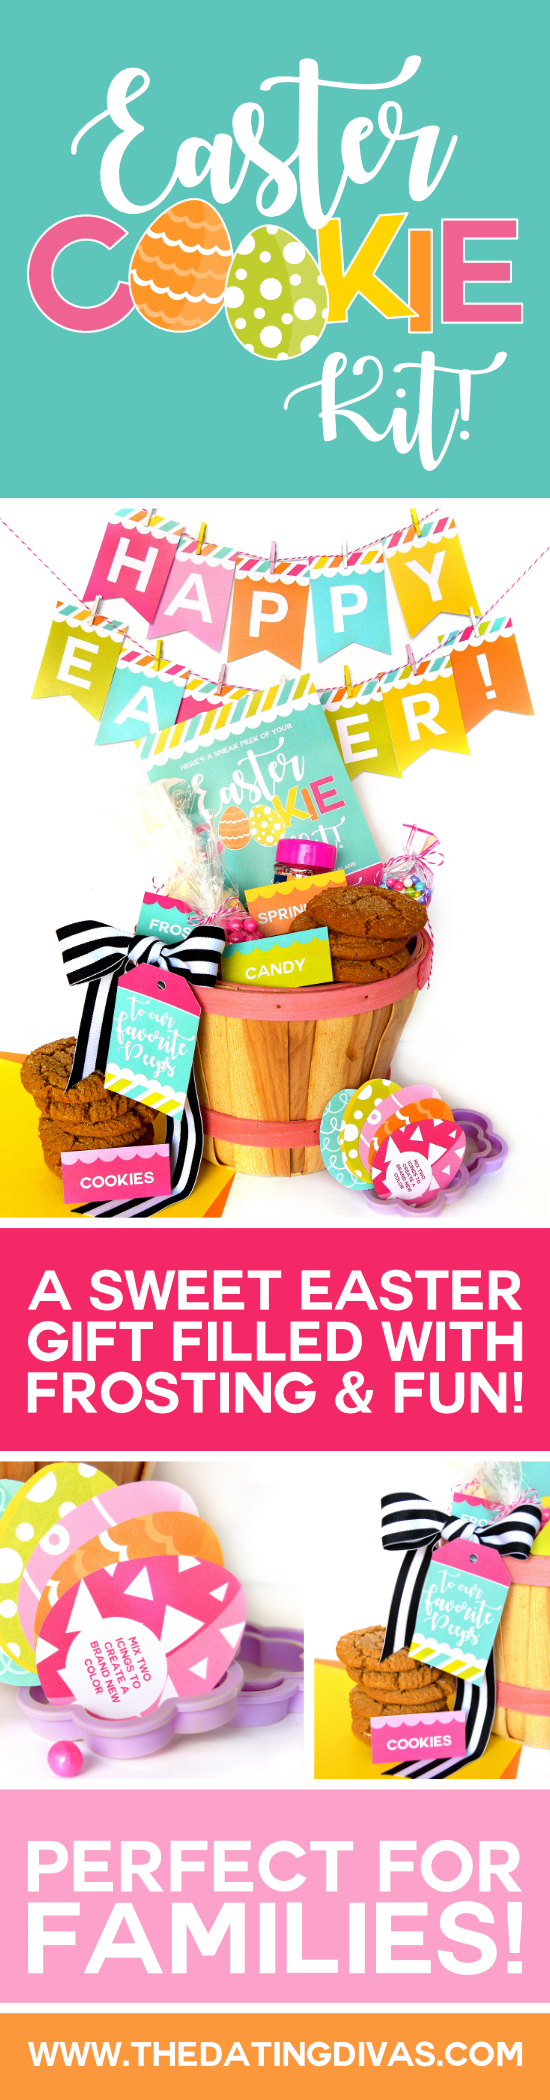 Easter Gift Basket Idea for Families #easterbasketideas #diyeasterbasket #eastergames